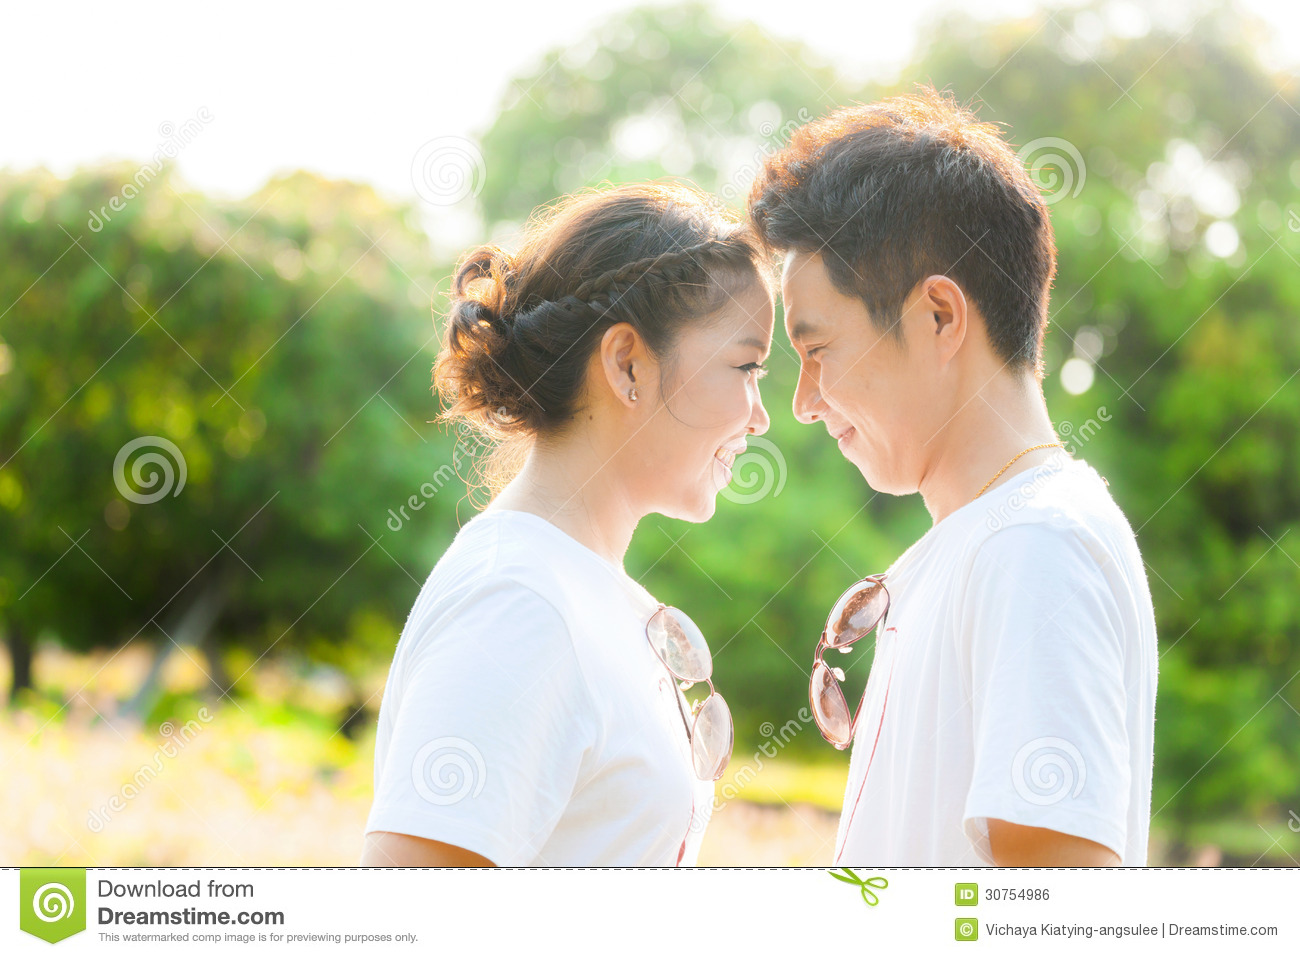 Couples in love at field